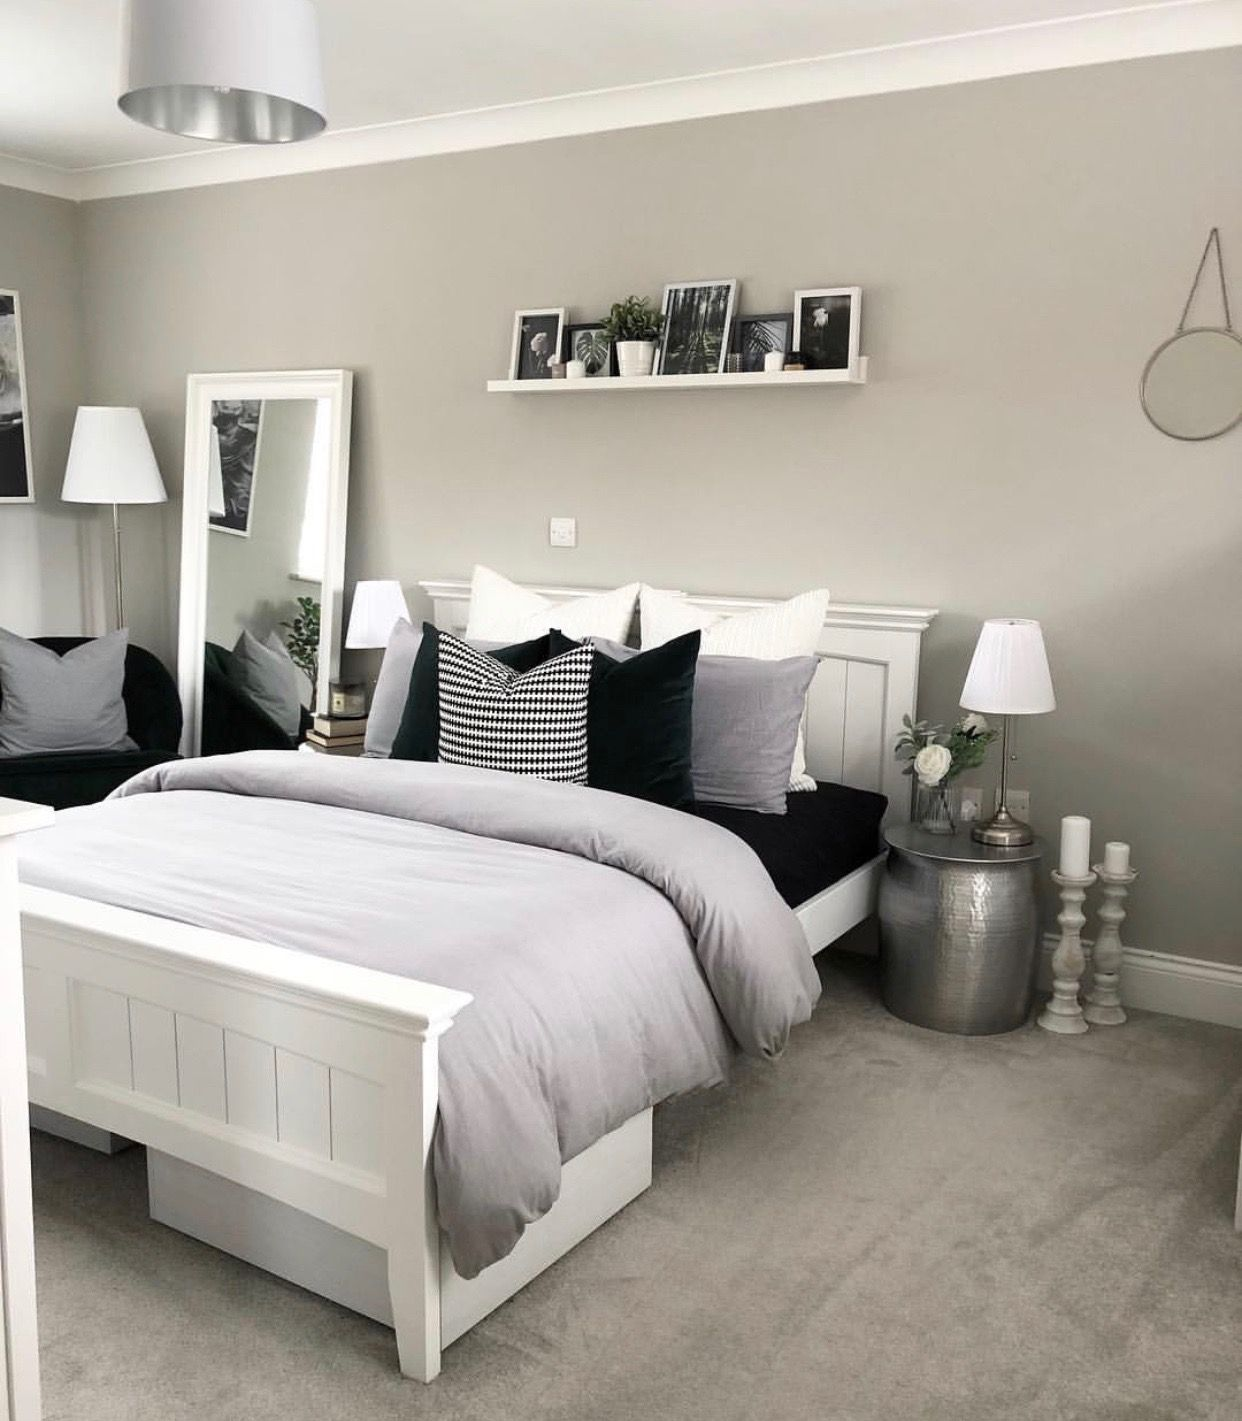 Pin by Briana on bedroom  White bedroom decor, Bedroom